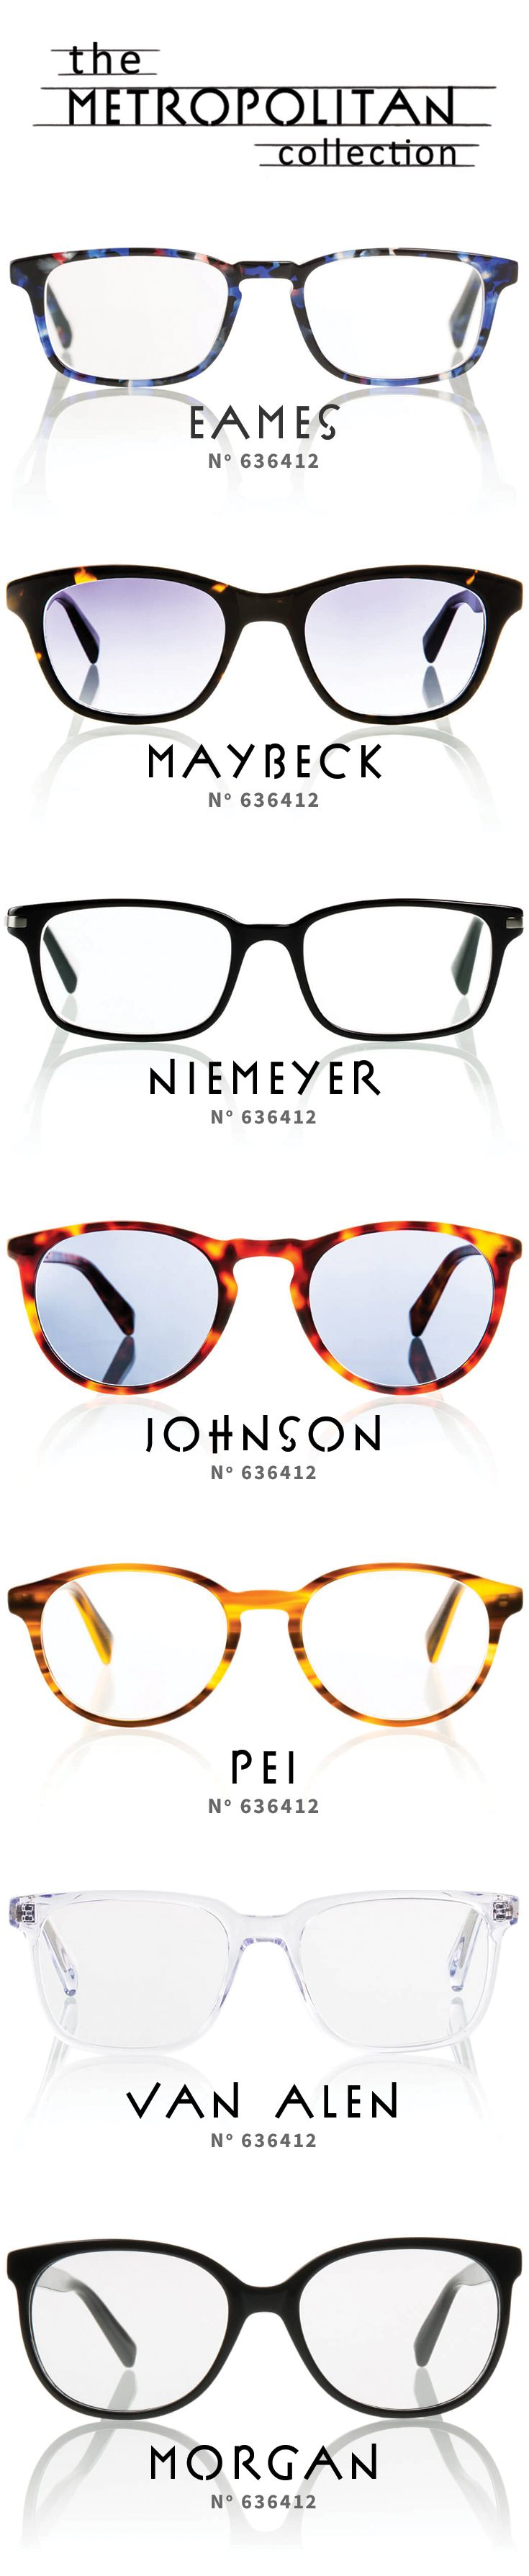 The Metropolitan Collection from Zenni® features classic eyewear ...